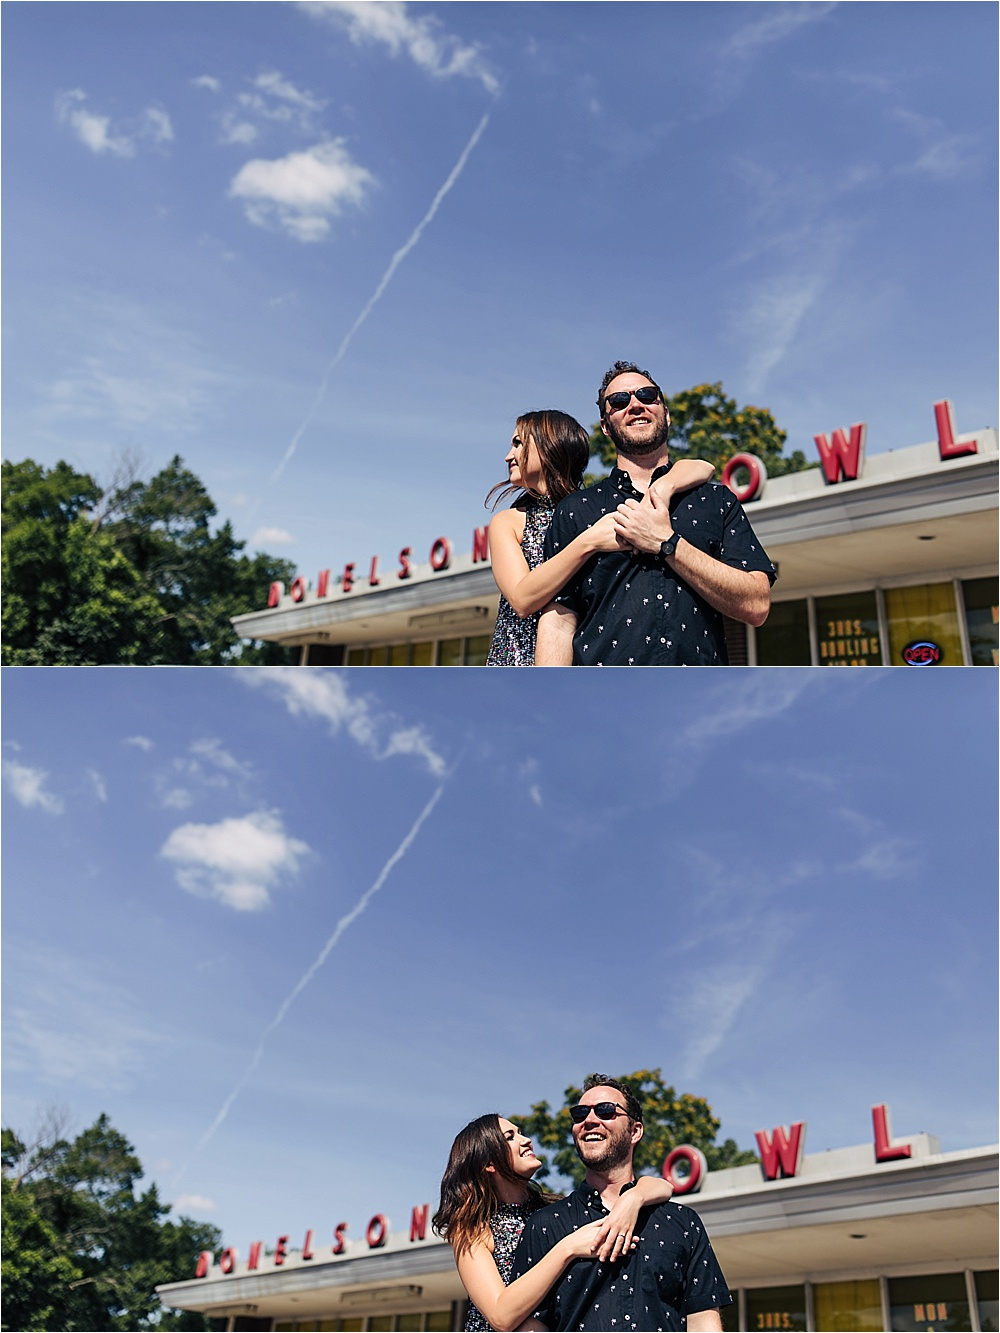 CK-Photo-Nashville-engagement-wedding-photographer-jm